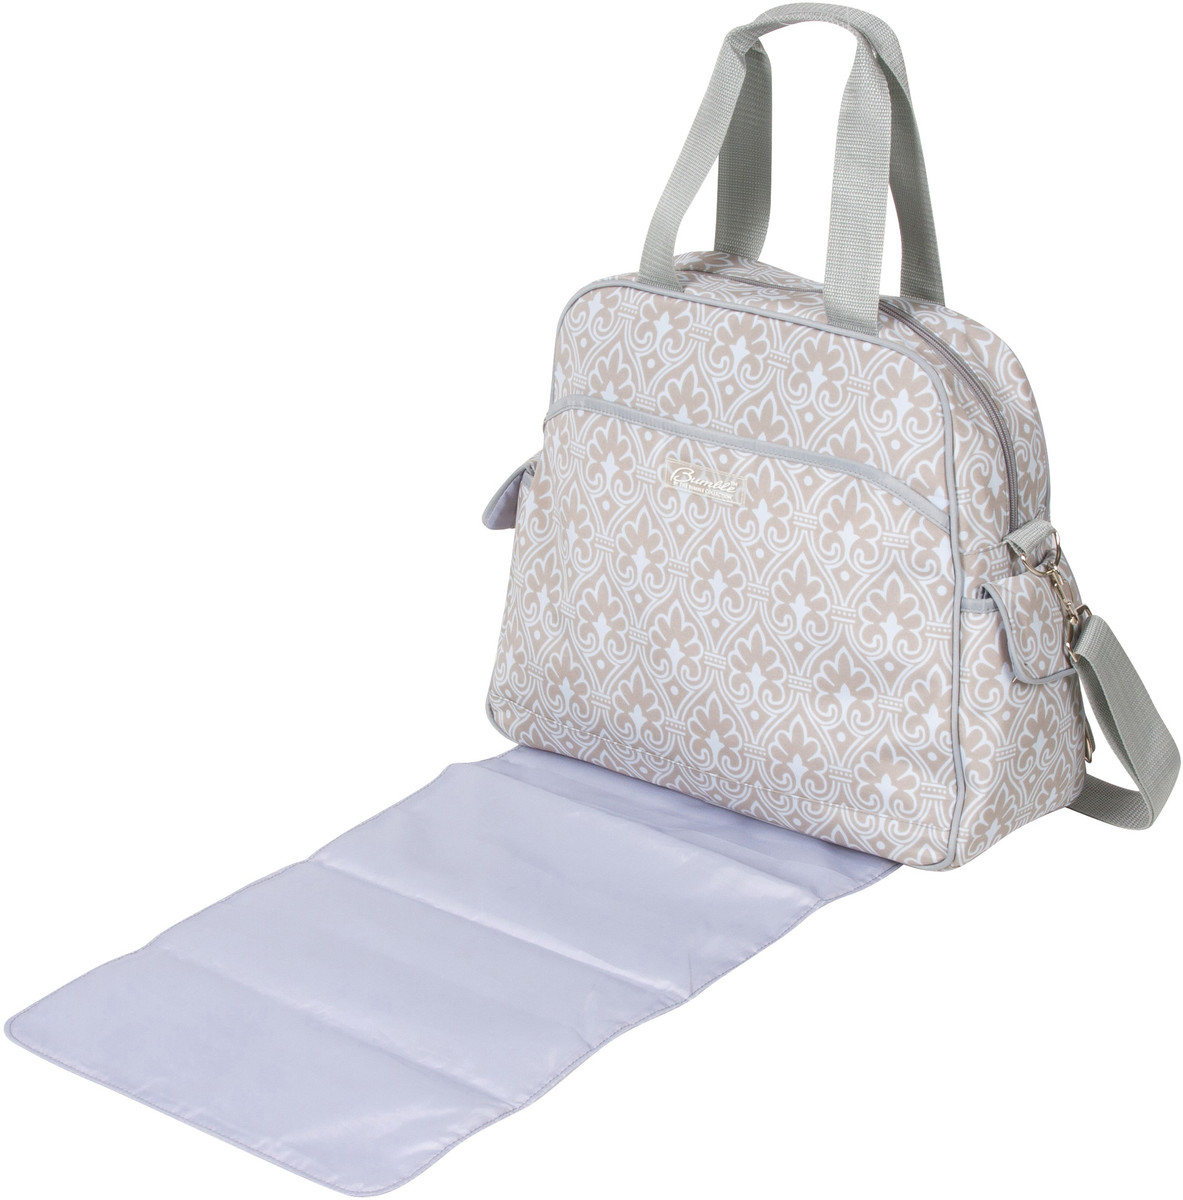 Bumble-Bags-Brittany-Backpack-Diaper-Bag (2)